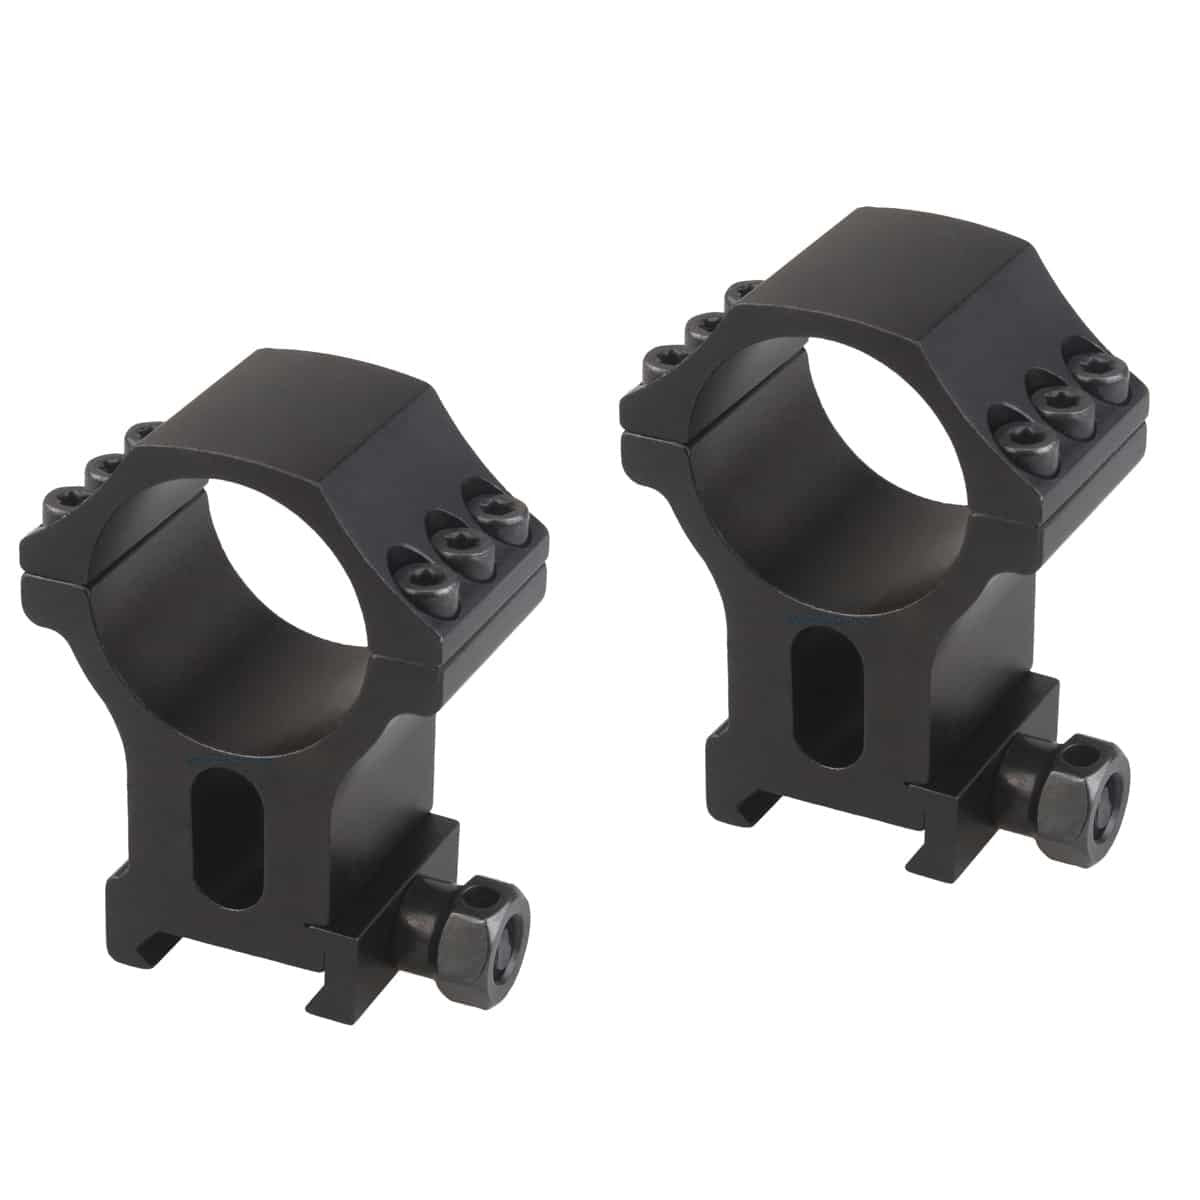 30mm X-ACCU Scope Ring High